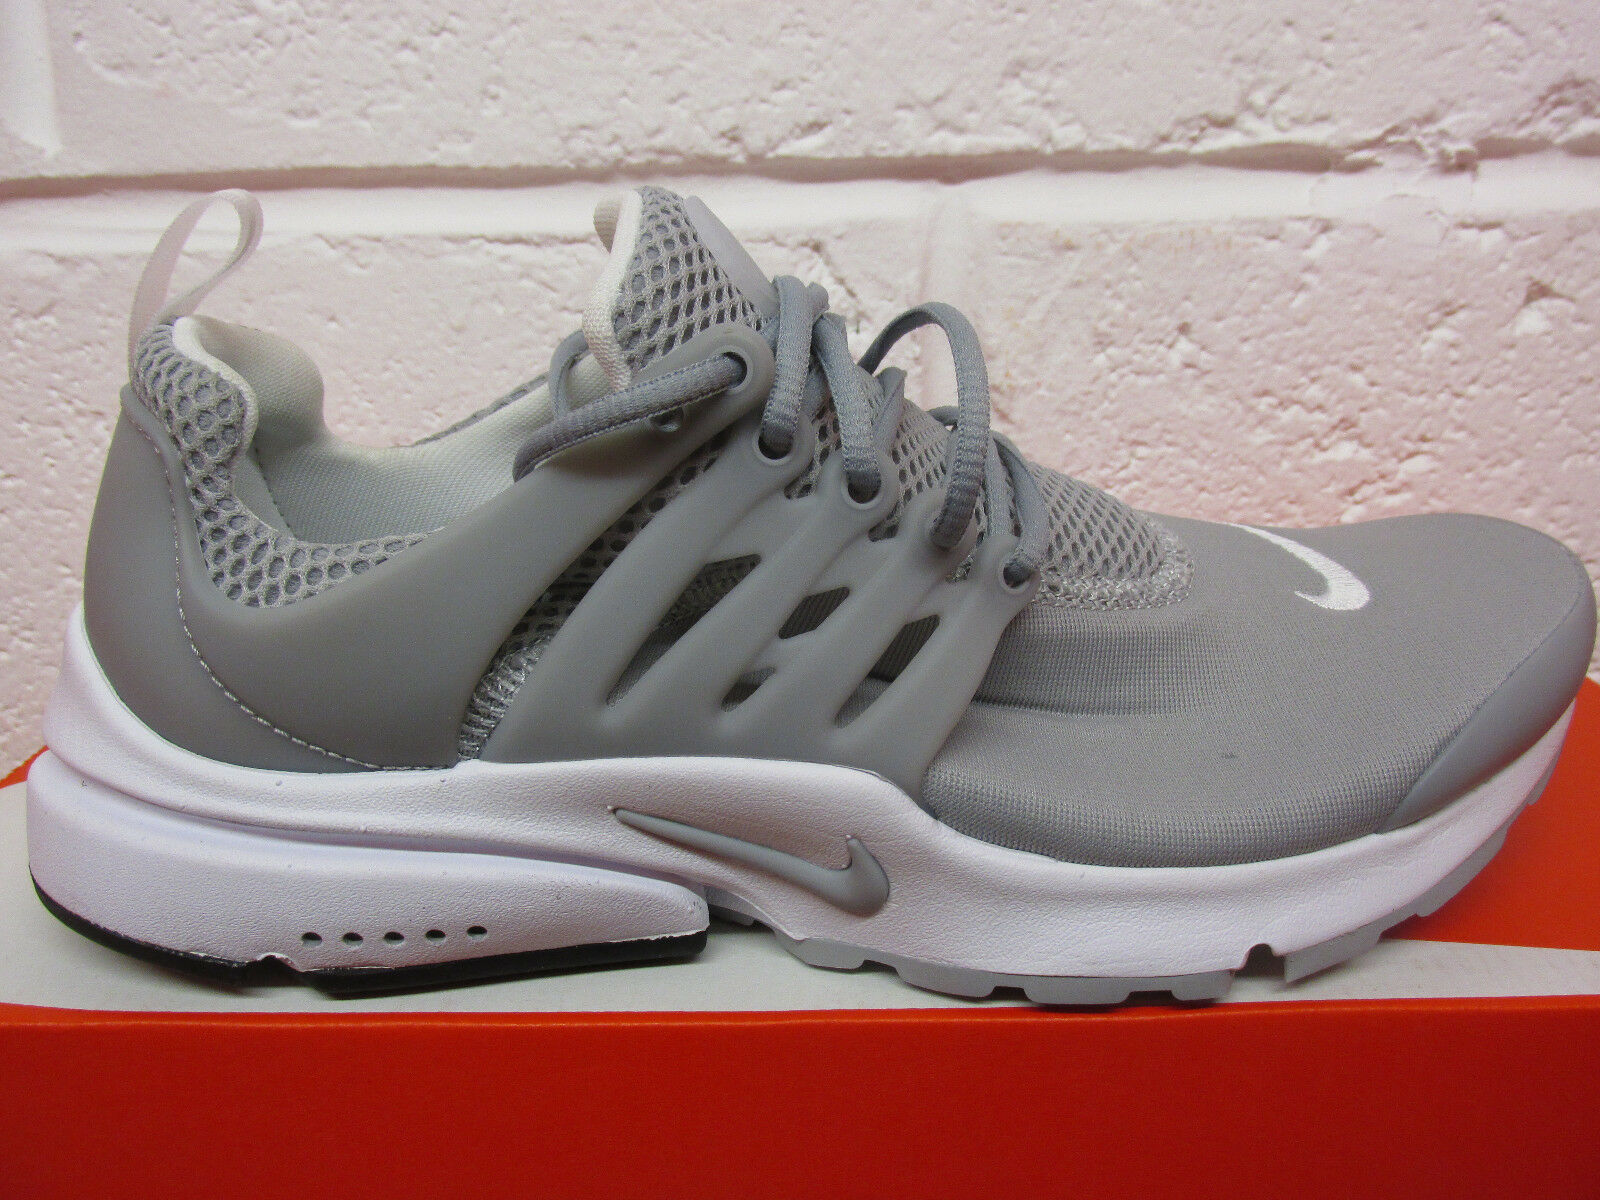 Nike Air Presto Essential homme  trainers 848187 013 sneakers  chaussures  CLEARANCE